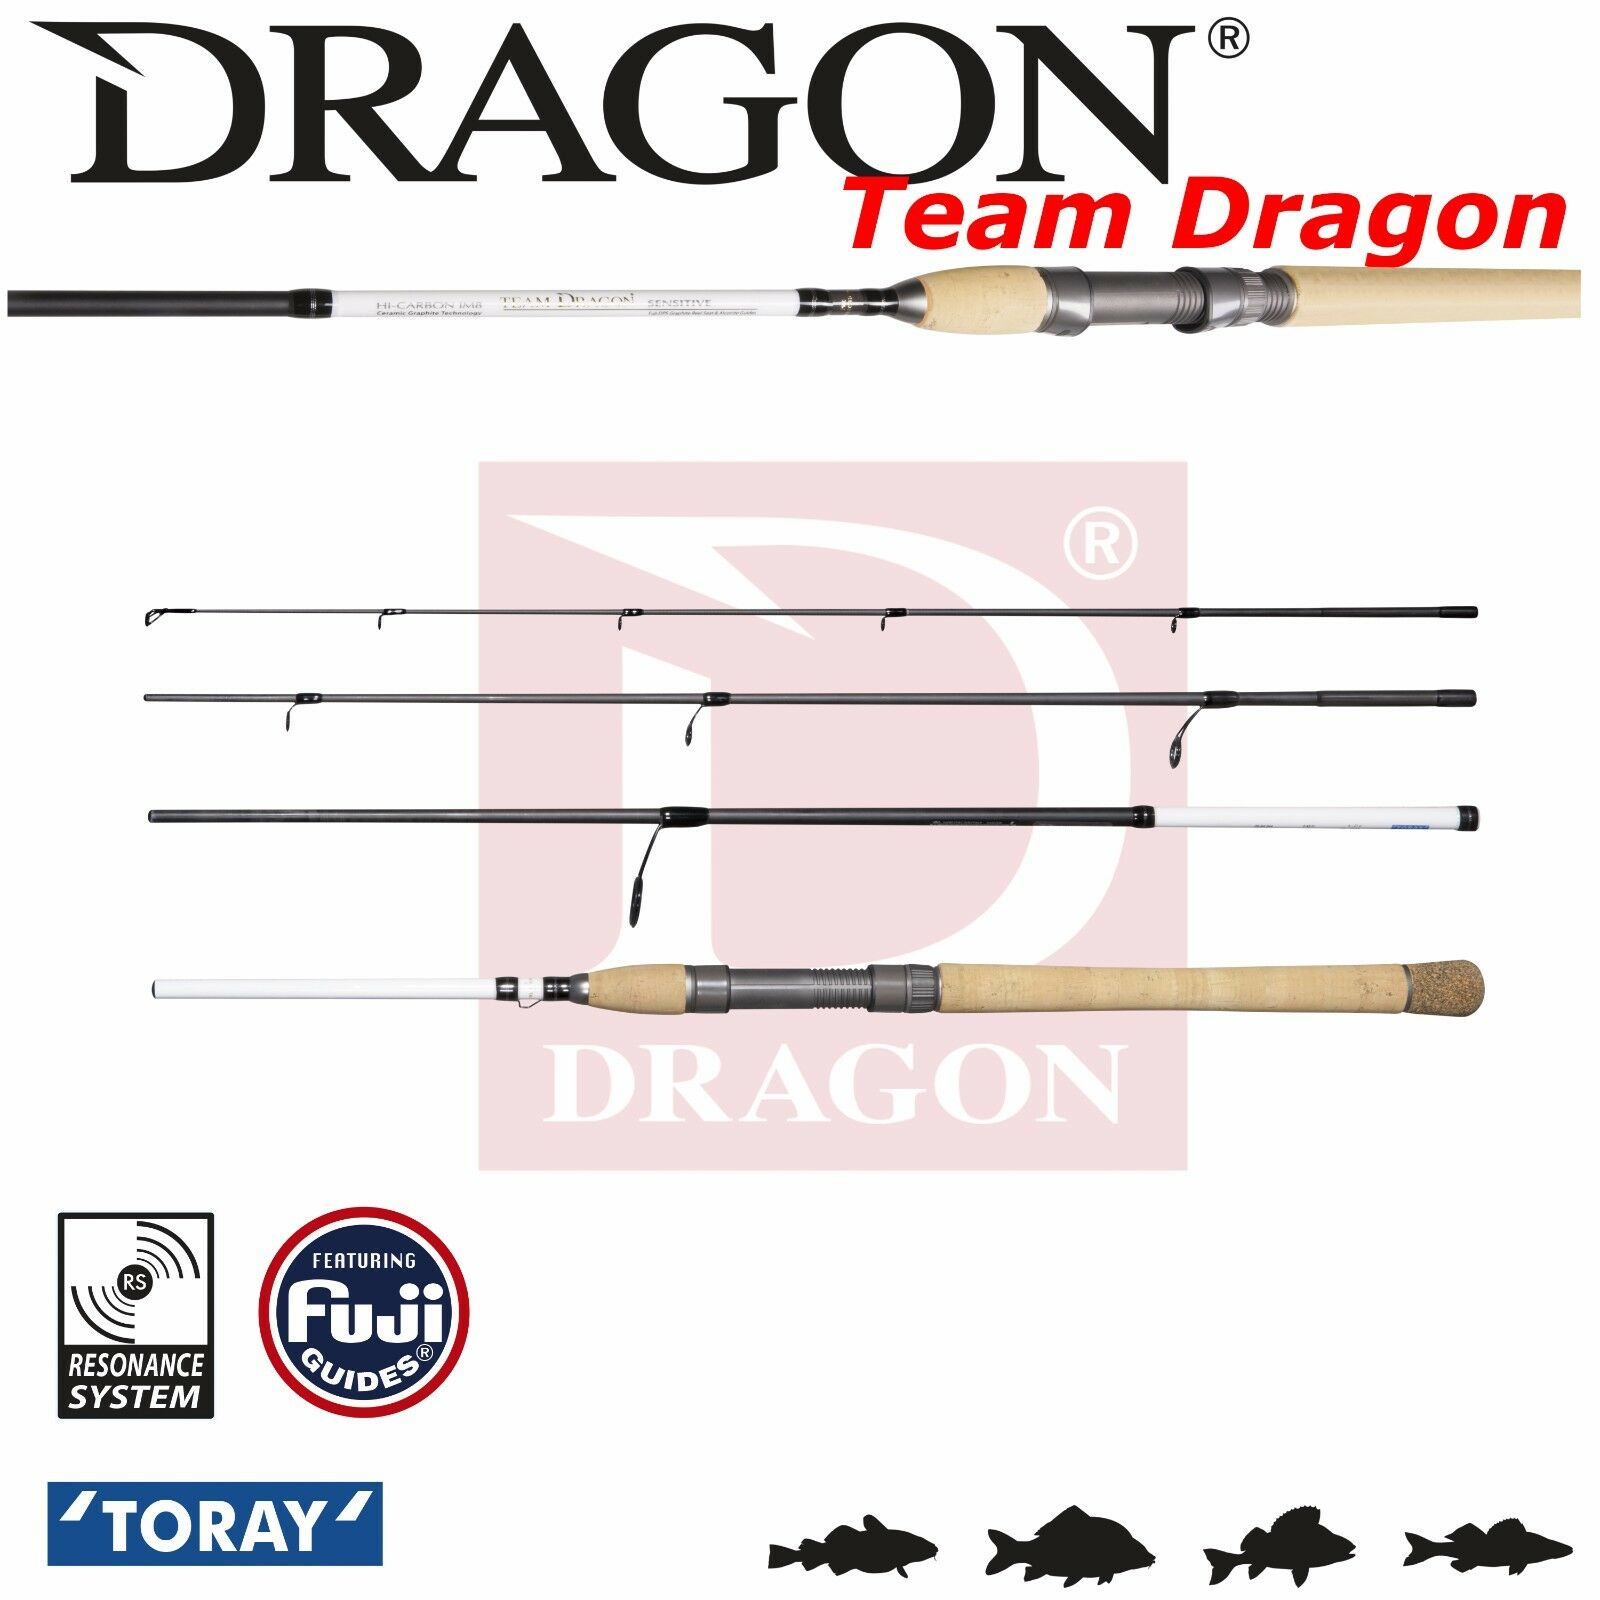 Travel Lure Fishing Rod Team Dragon Voyager Trout 8' 2,45m 4-21g Fast Action